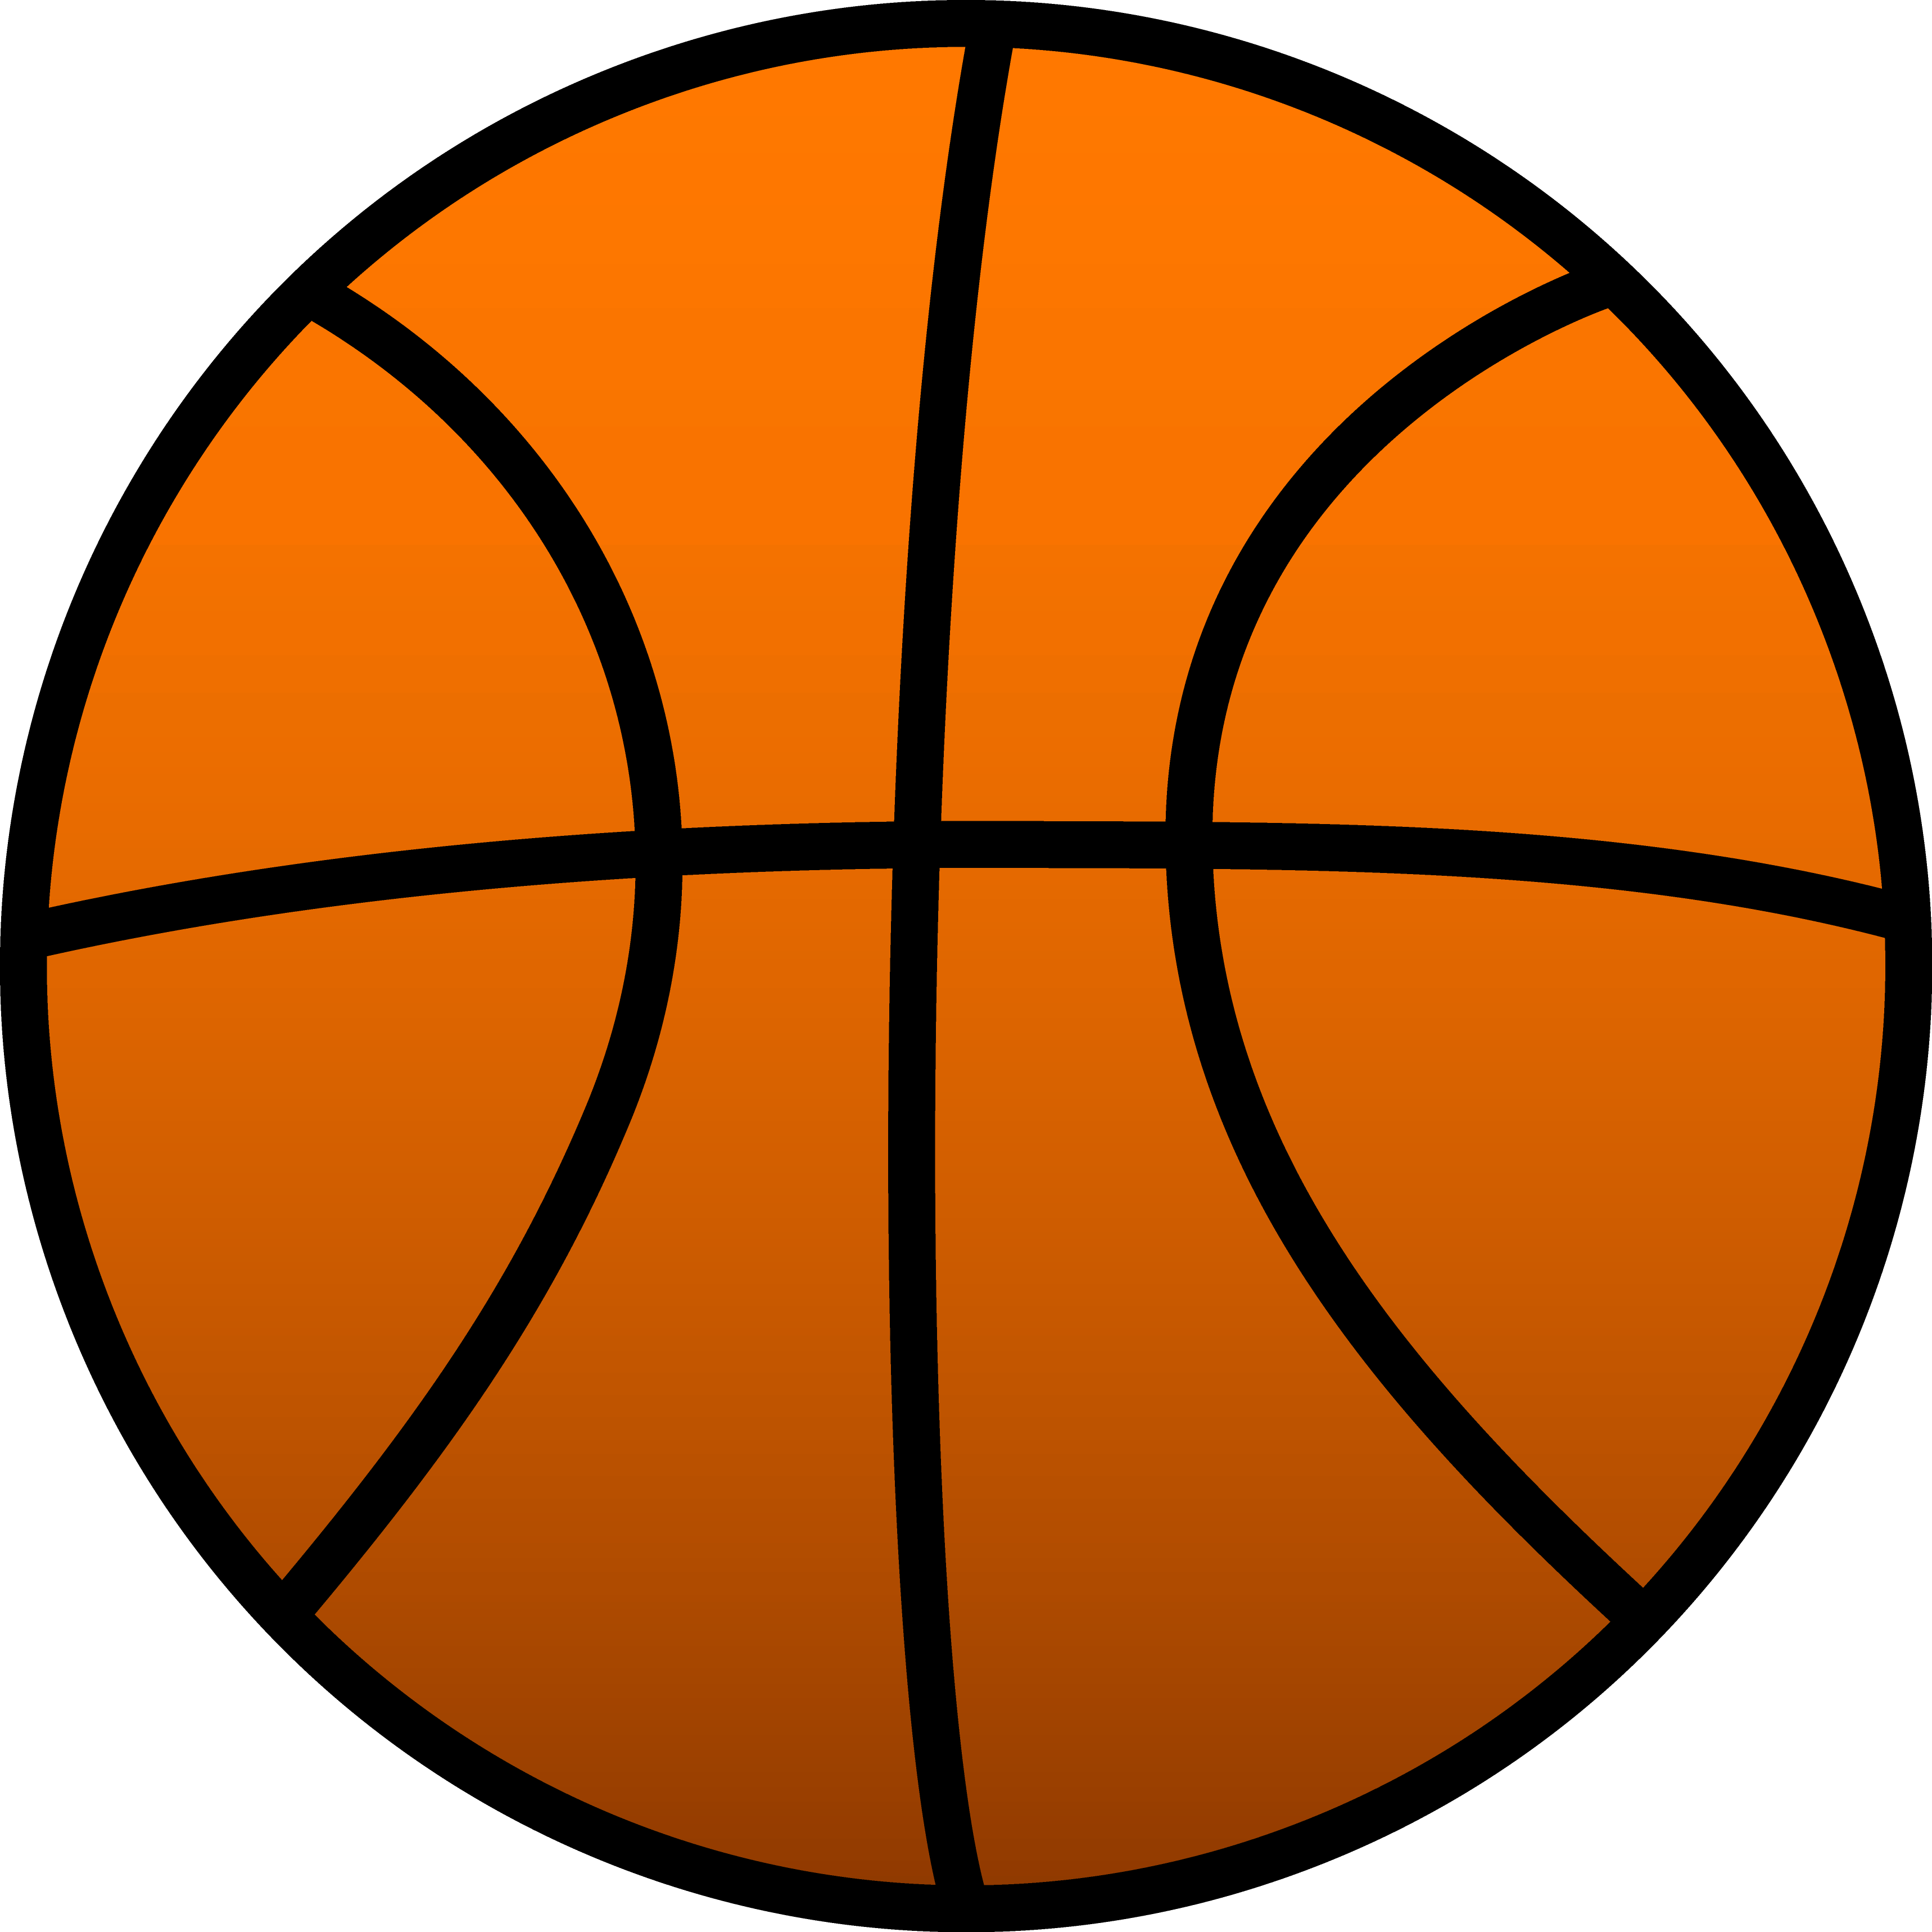 Basketball jersey back clipart clip art black and white library Free Wilson Basketball Cliparts, Download Free Clip Art, Free Clip ... clip art black and white library